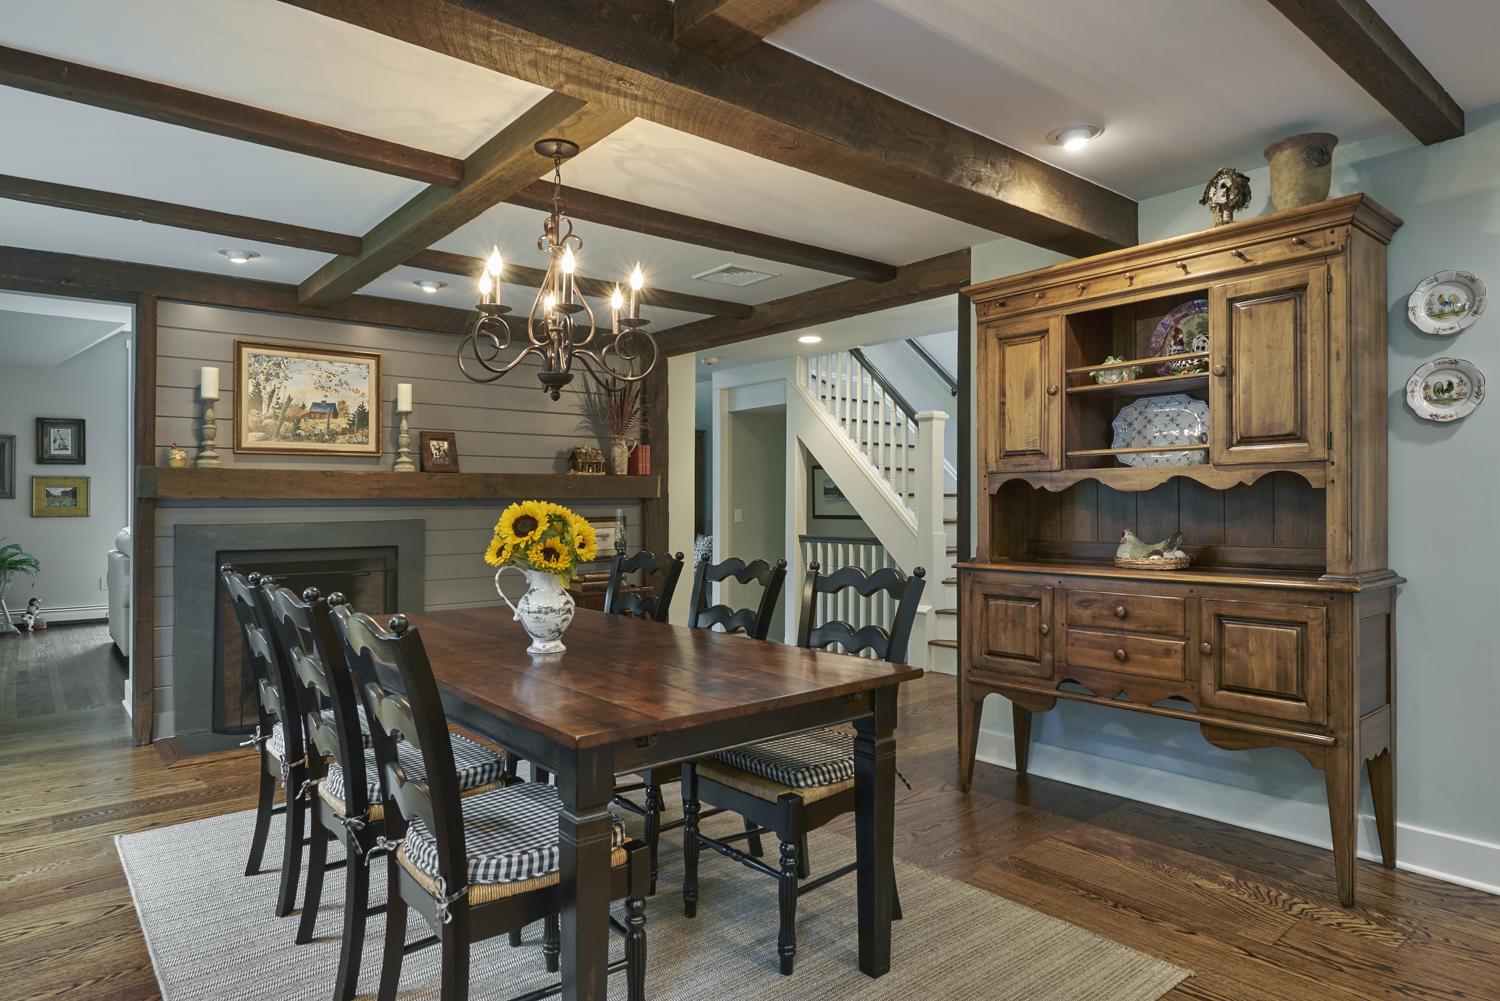 New Open Dining Area with Antique Beams